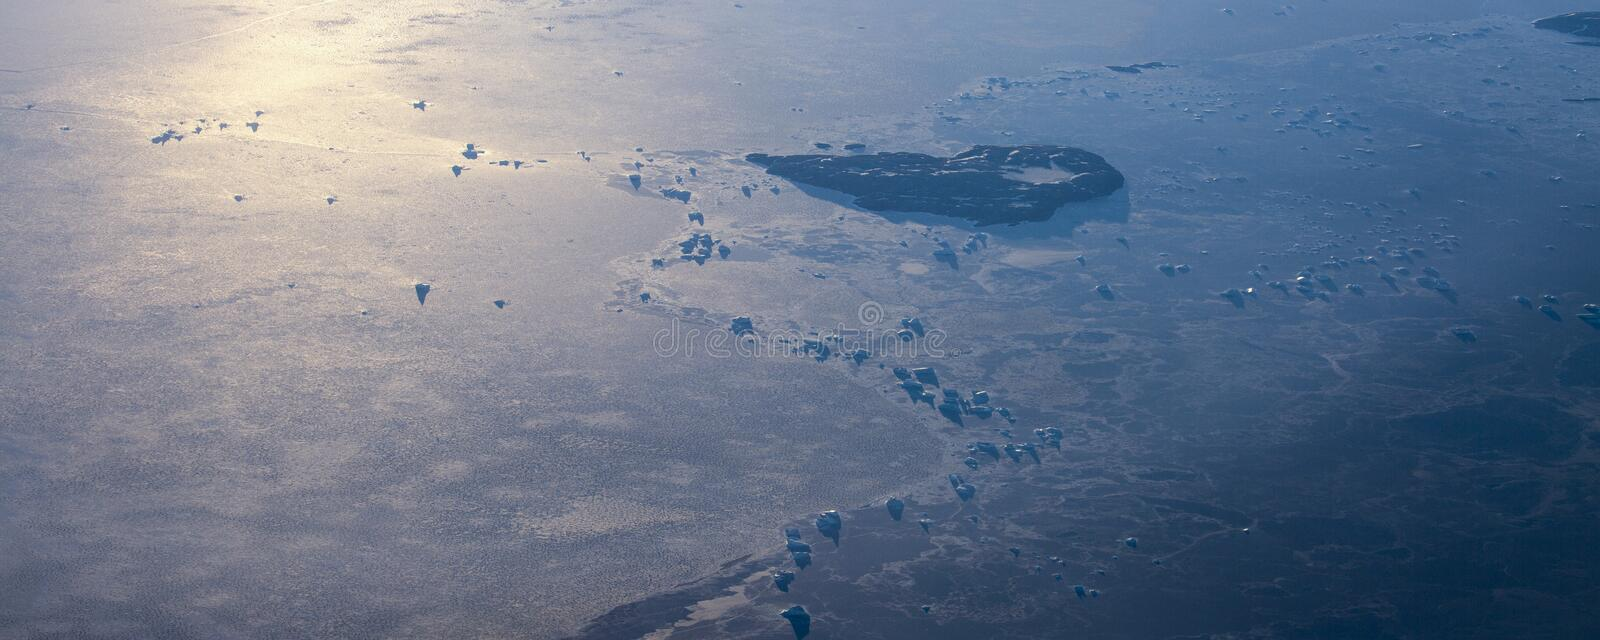 Take a picture of the ice on the bering strait(14) stock photos